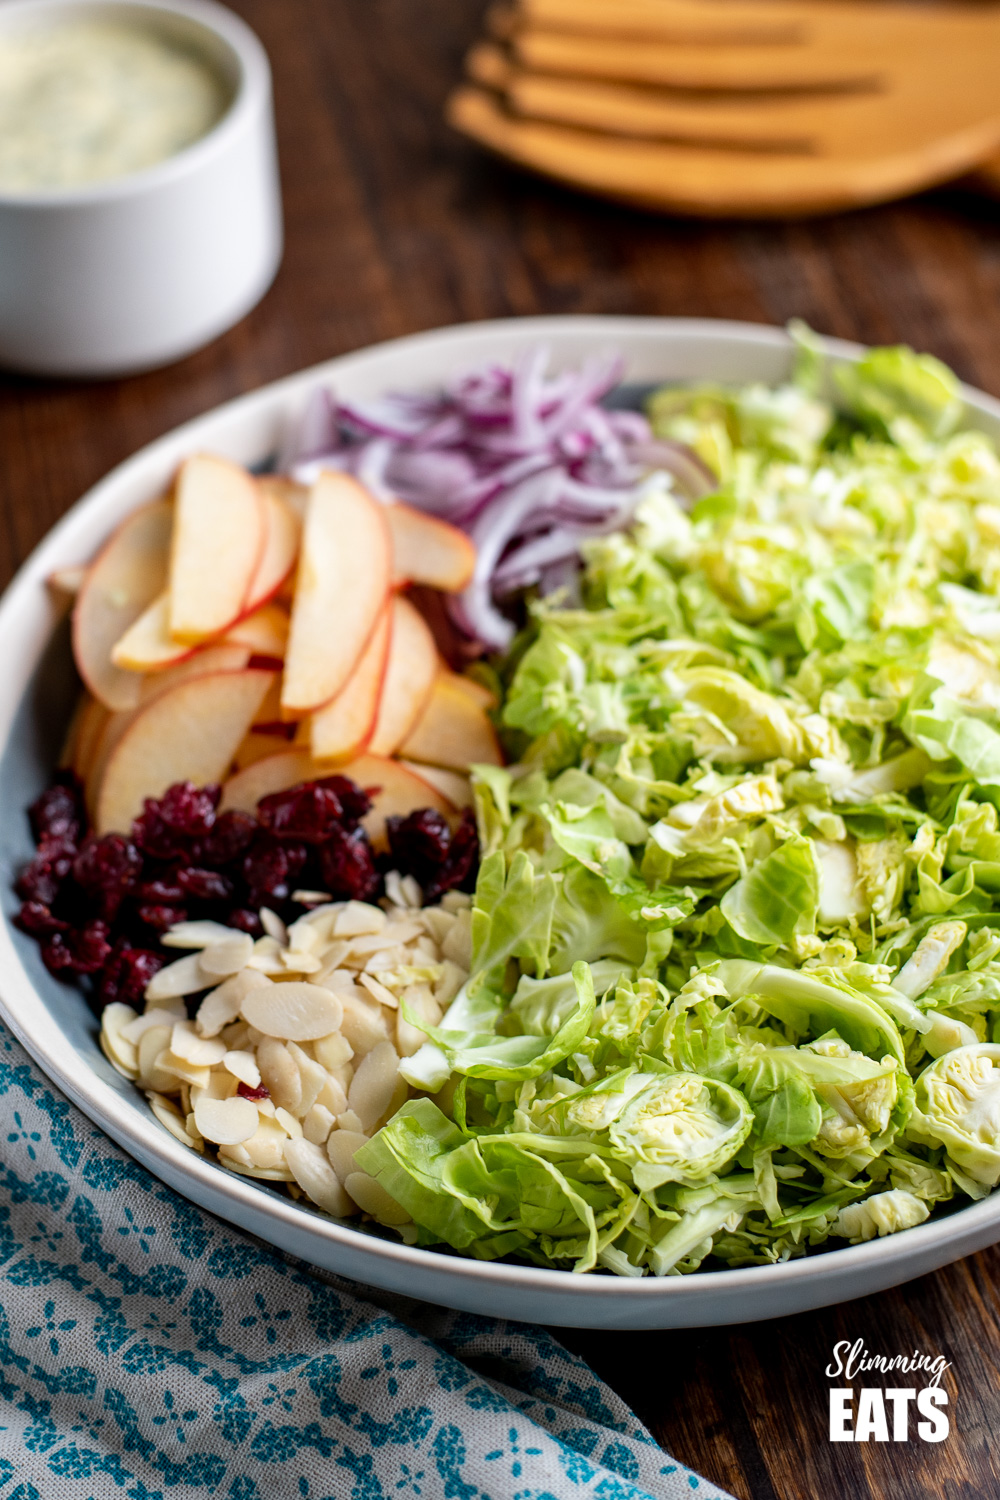 shredded brussels sprouts salad in a bowl with apples, red onion, cranberries and almonds on a wooden board